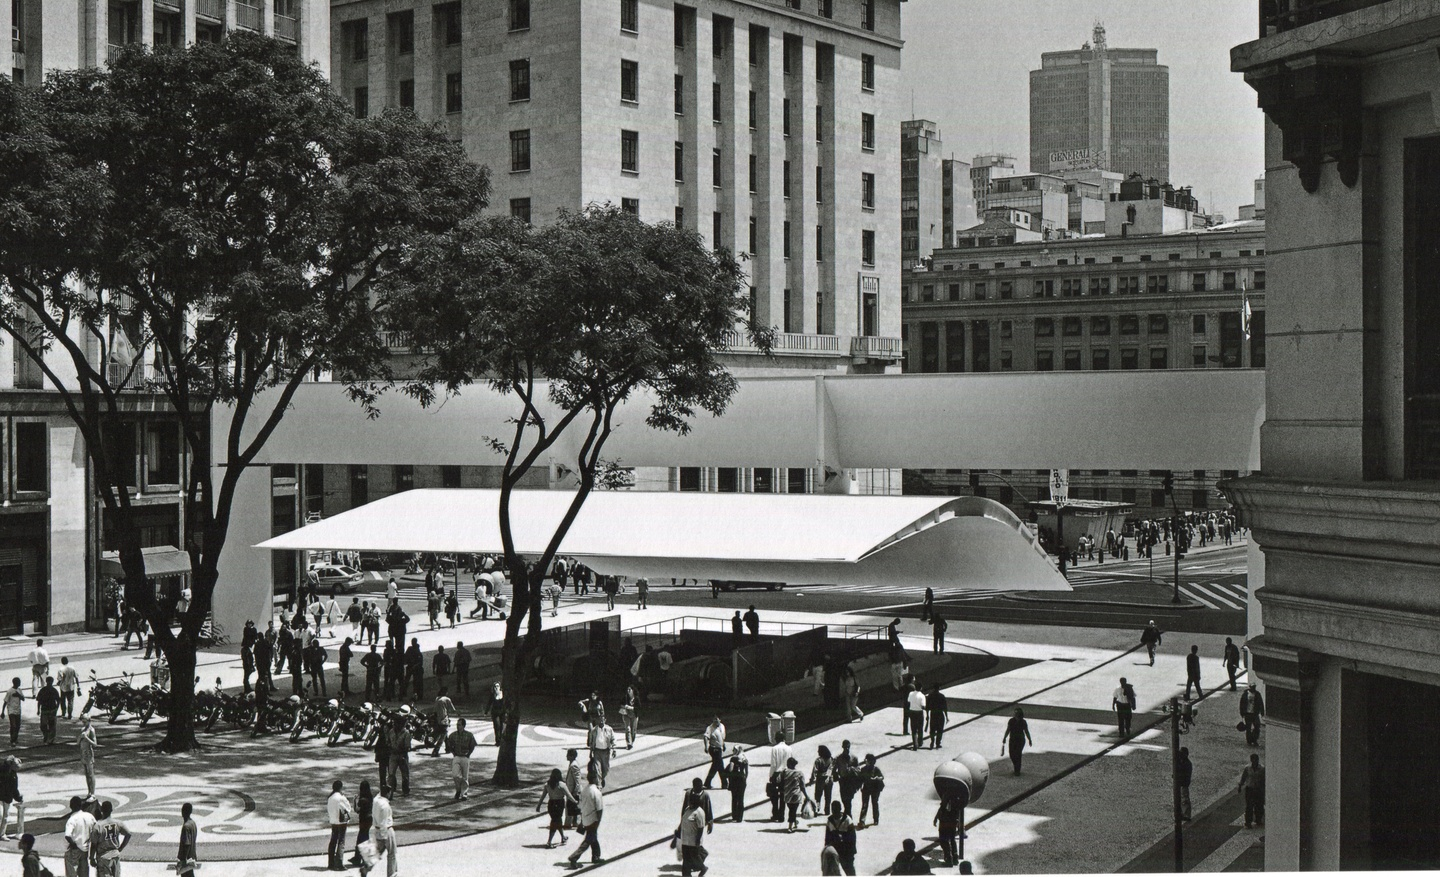 Black-and-white photo of people in a spacious city plaza, with a couple of tall trees and a canopy overhang